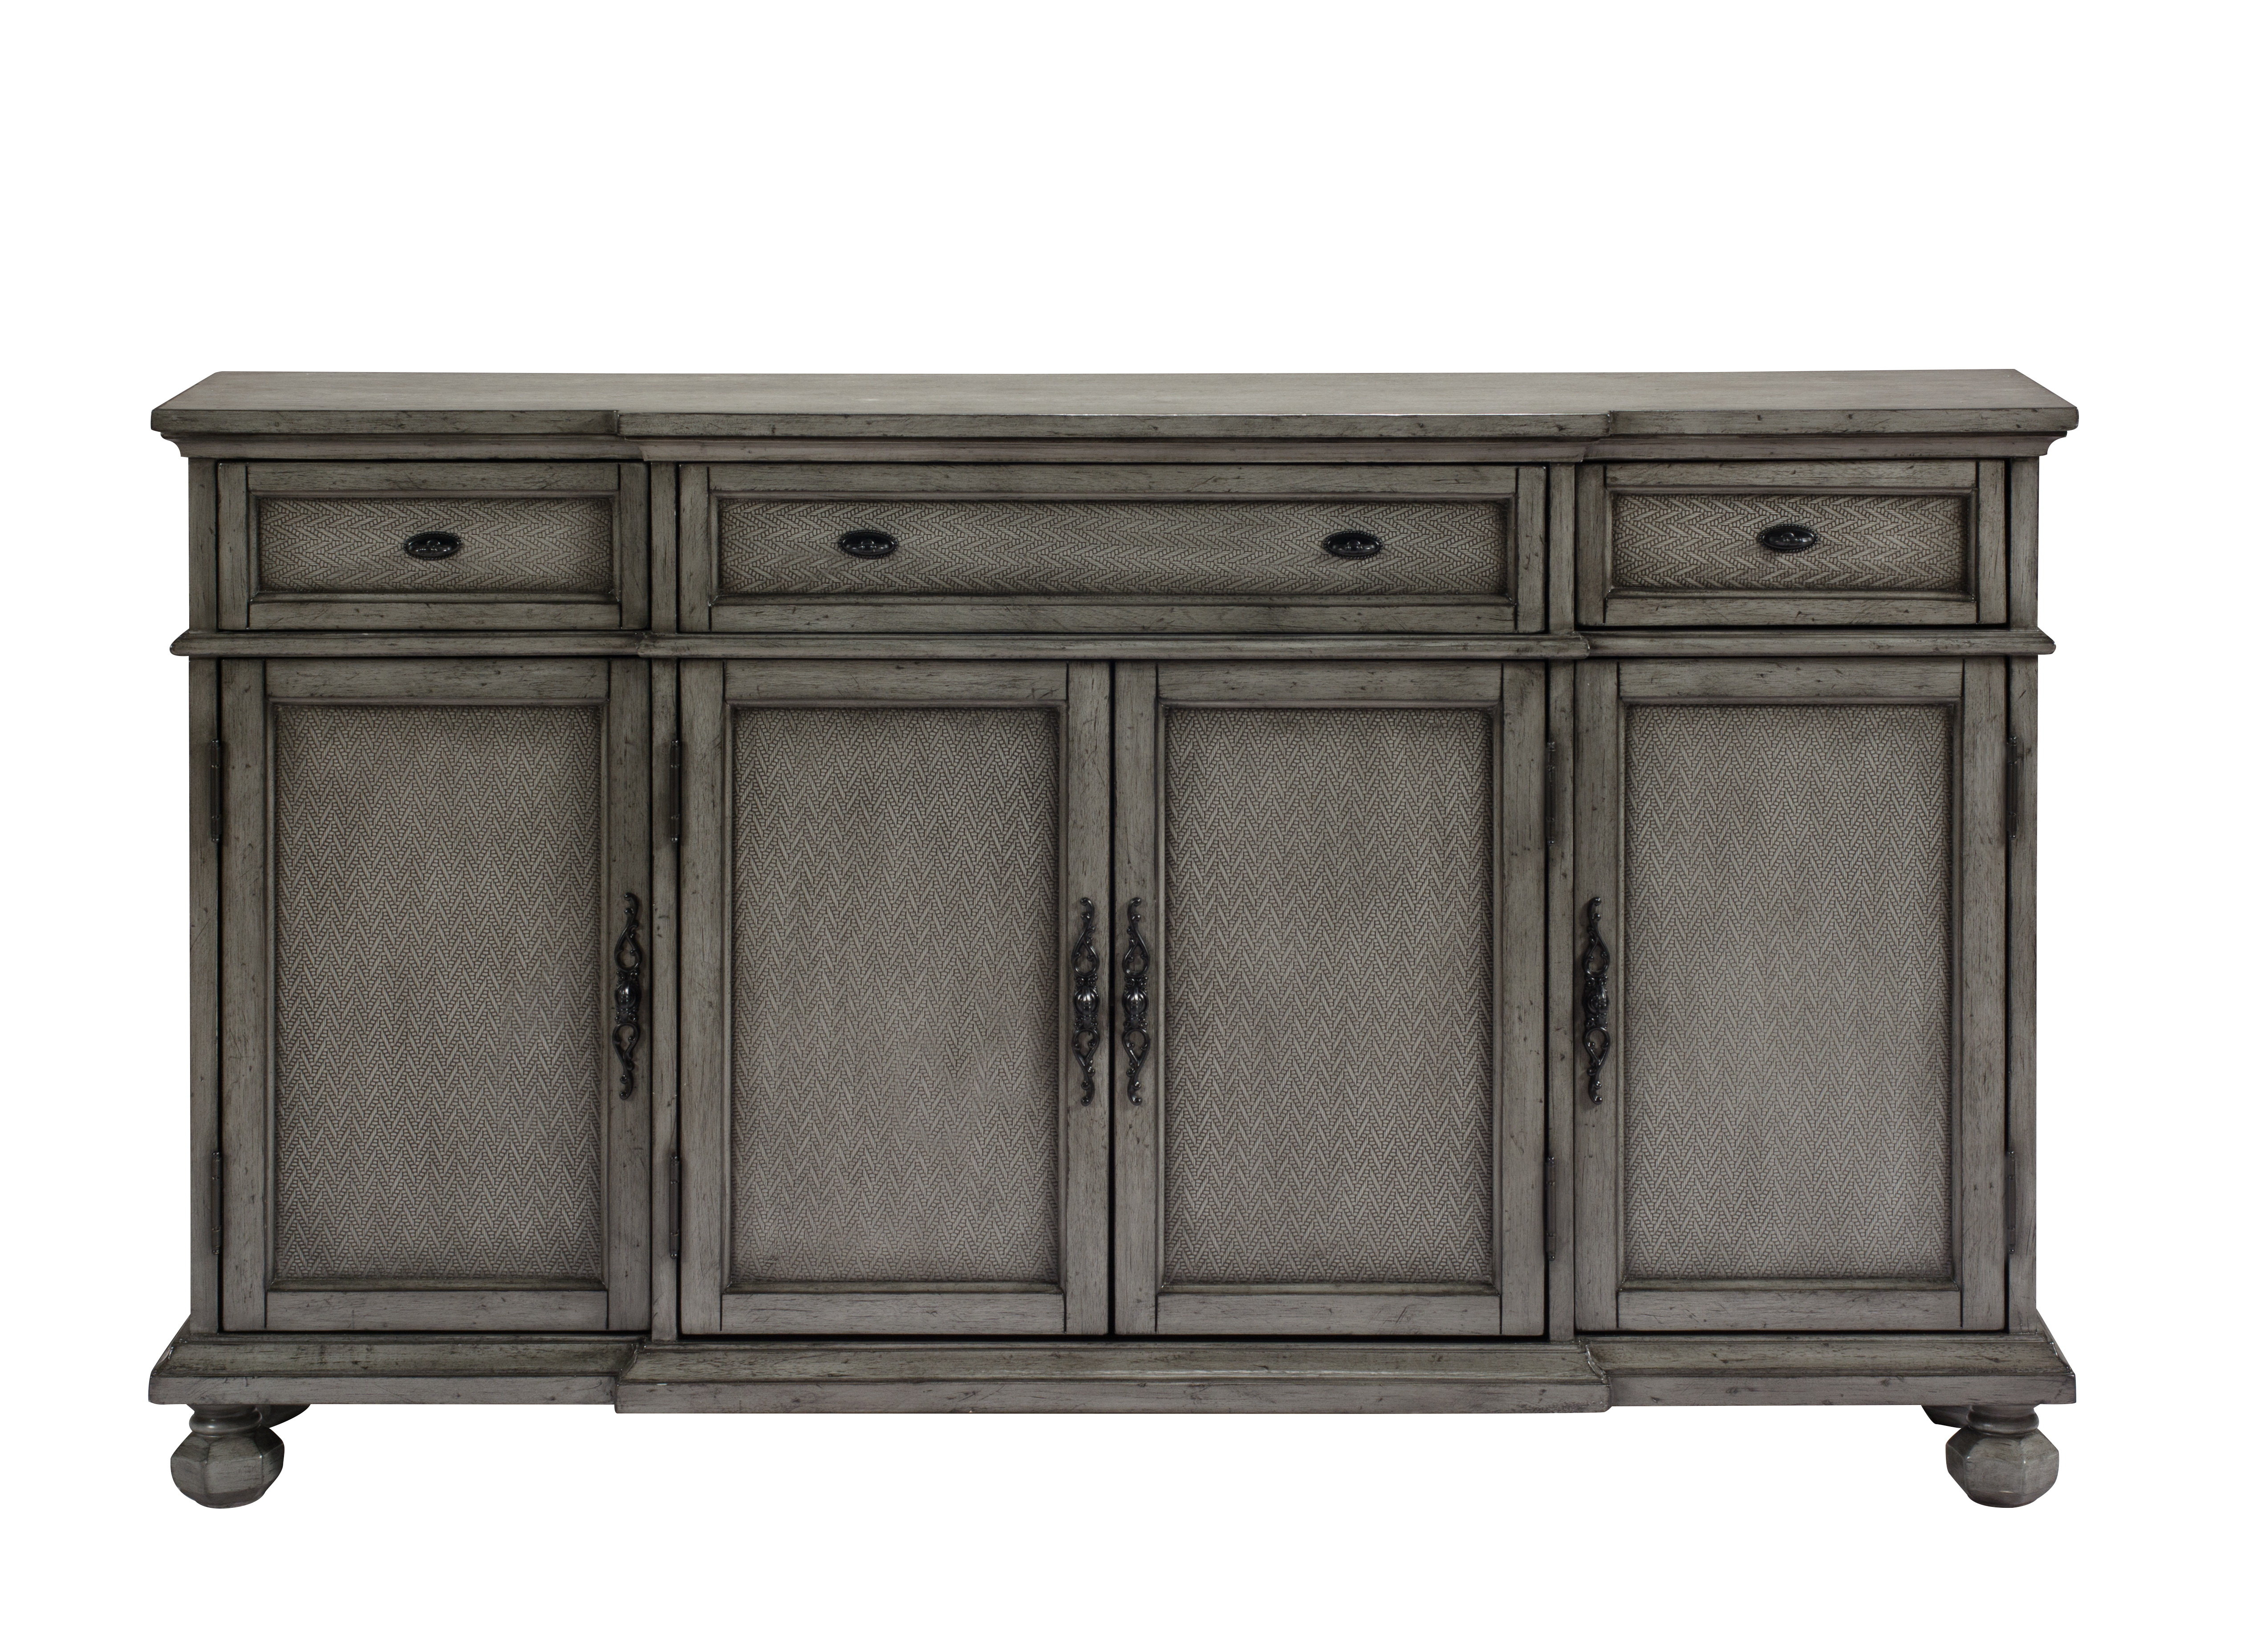 Giulia 3 Drawer Credenza With Newest Adelbert Credenzas (#10 of 20)